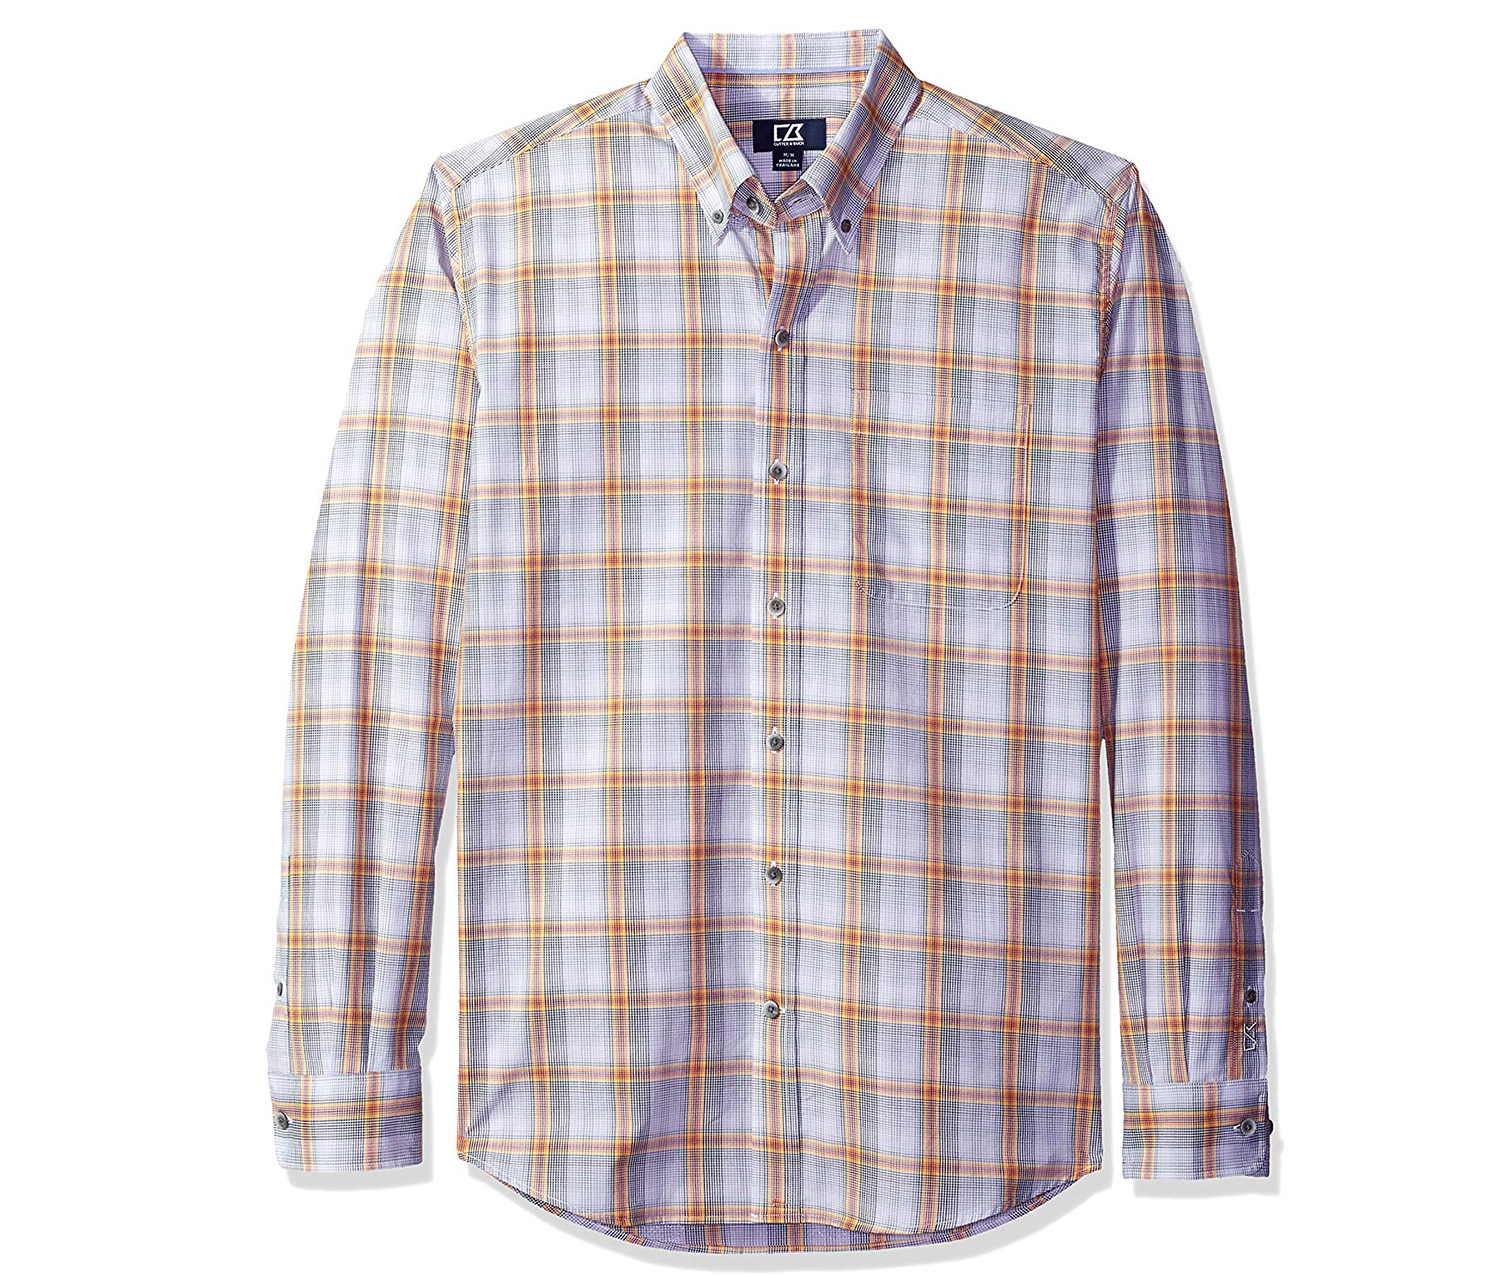 Cutter & Buck Men's Big and Tall Starboard Plaid, White/Yellow